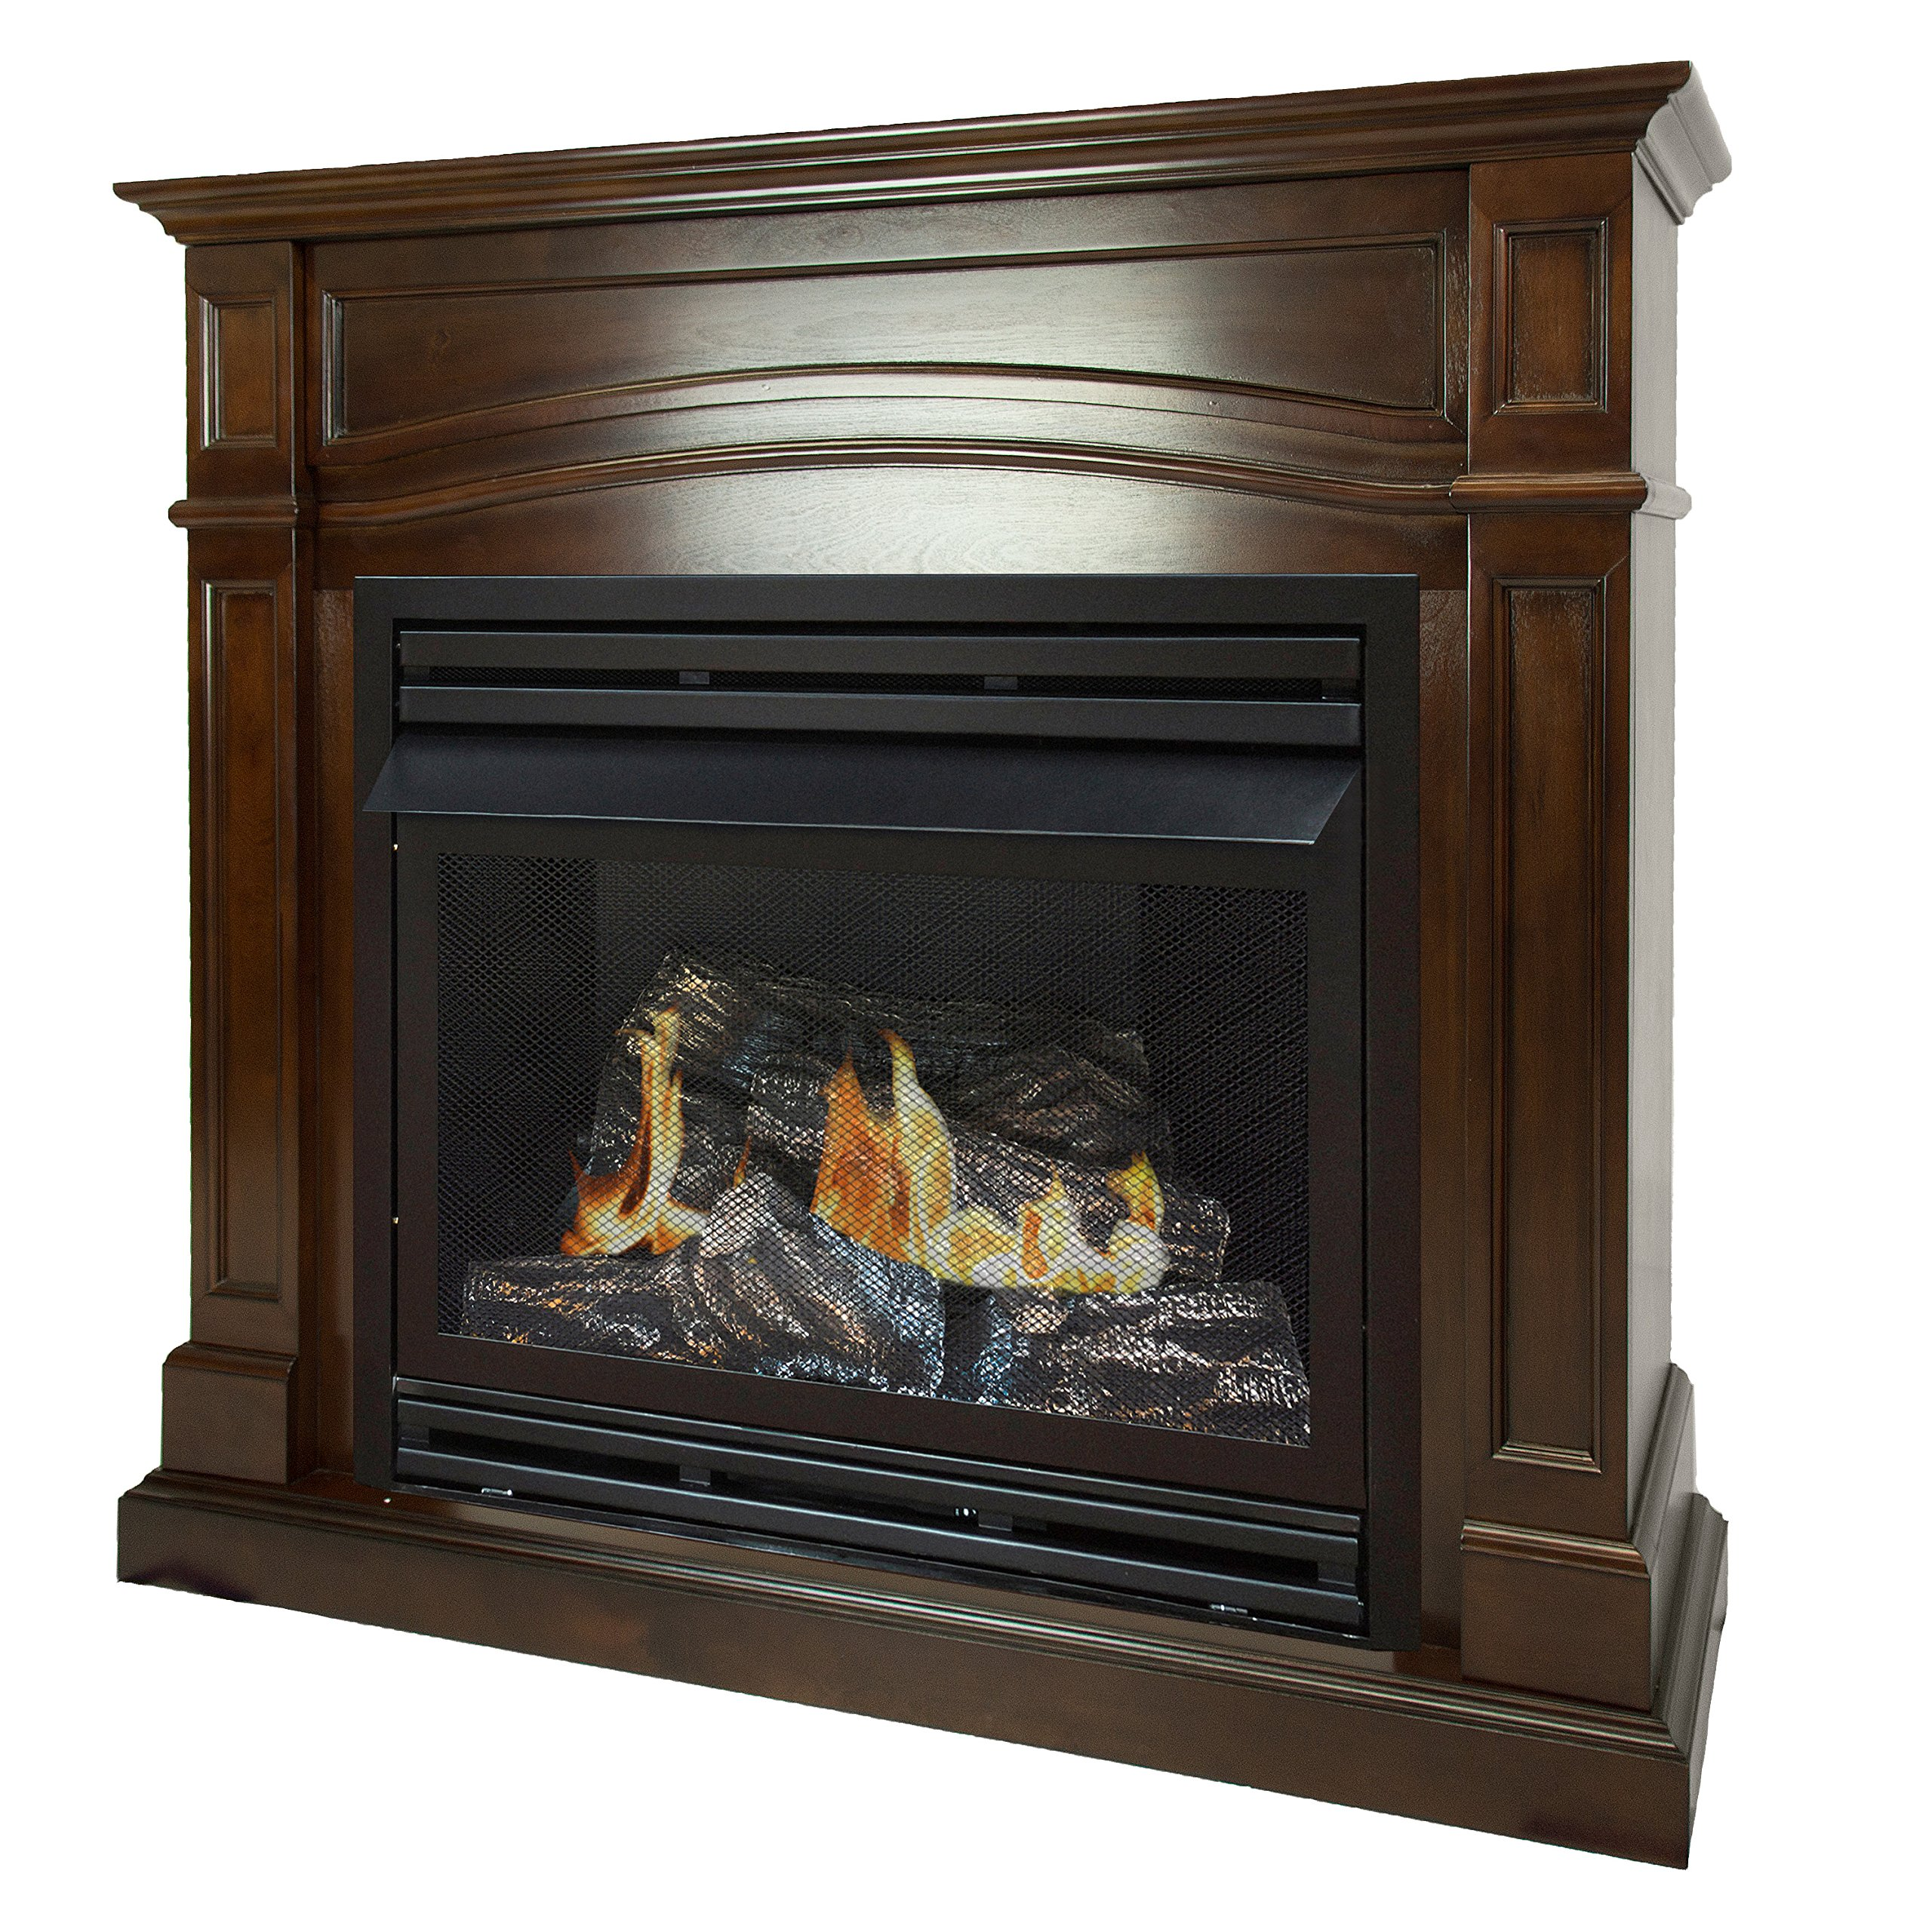 Pleasant Hearth 46 Full Size Natural Gas Vent Free Fireplace System 32,000 BTU, Rich Cherry by Pleasant Hearth